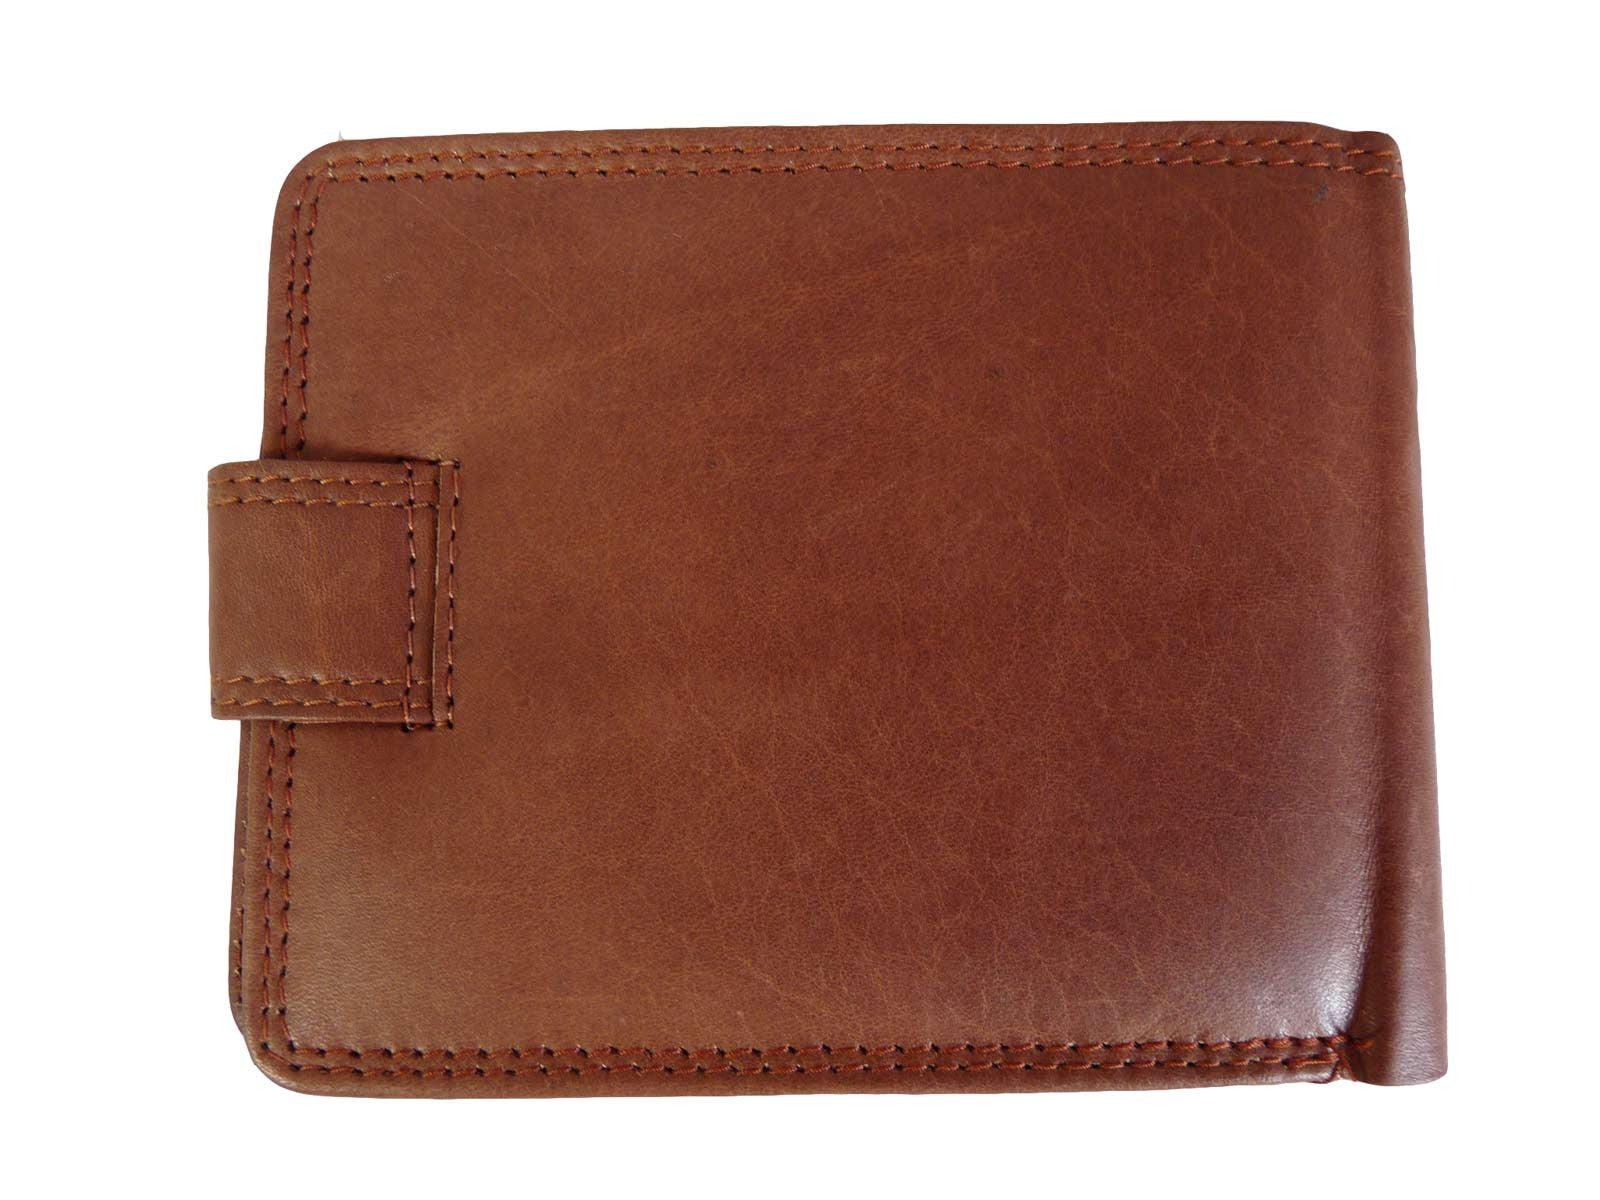 Gents Slimfold Jeans Wallets Roamlite RL410AWlb REAR view